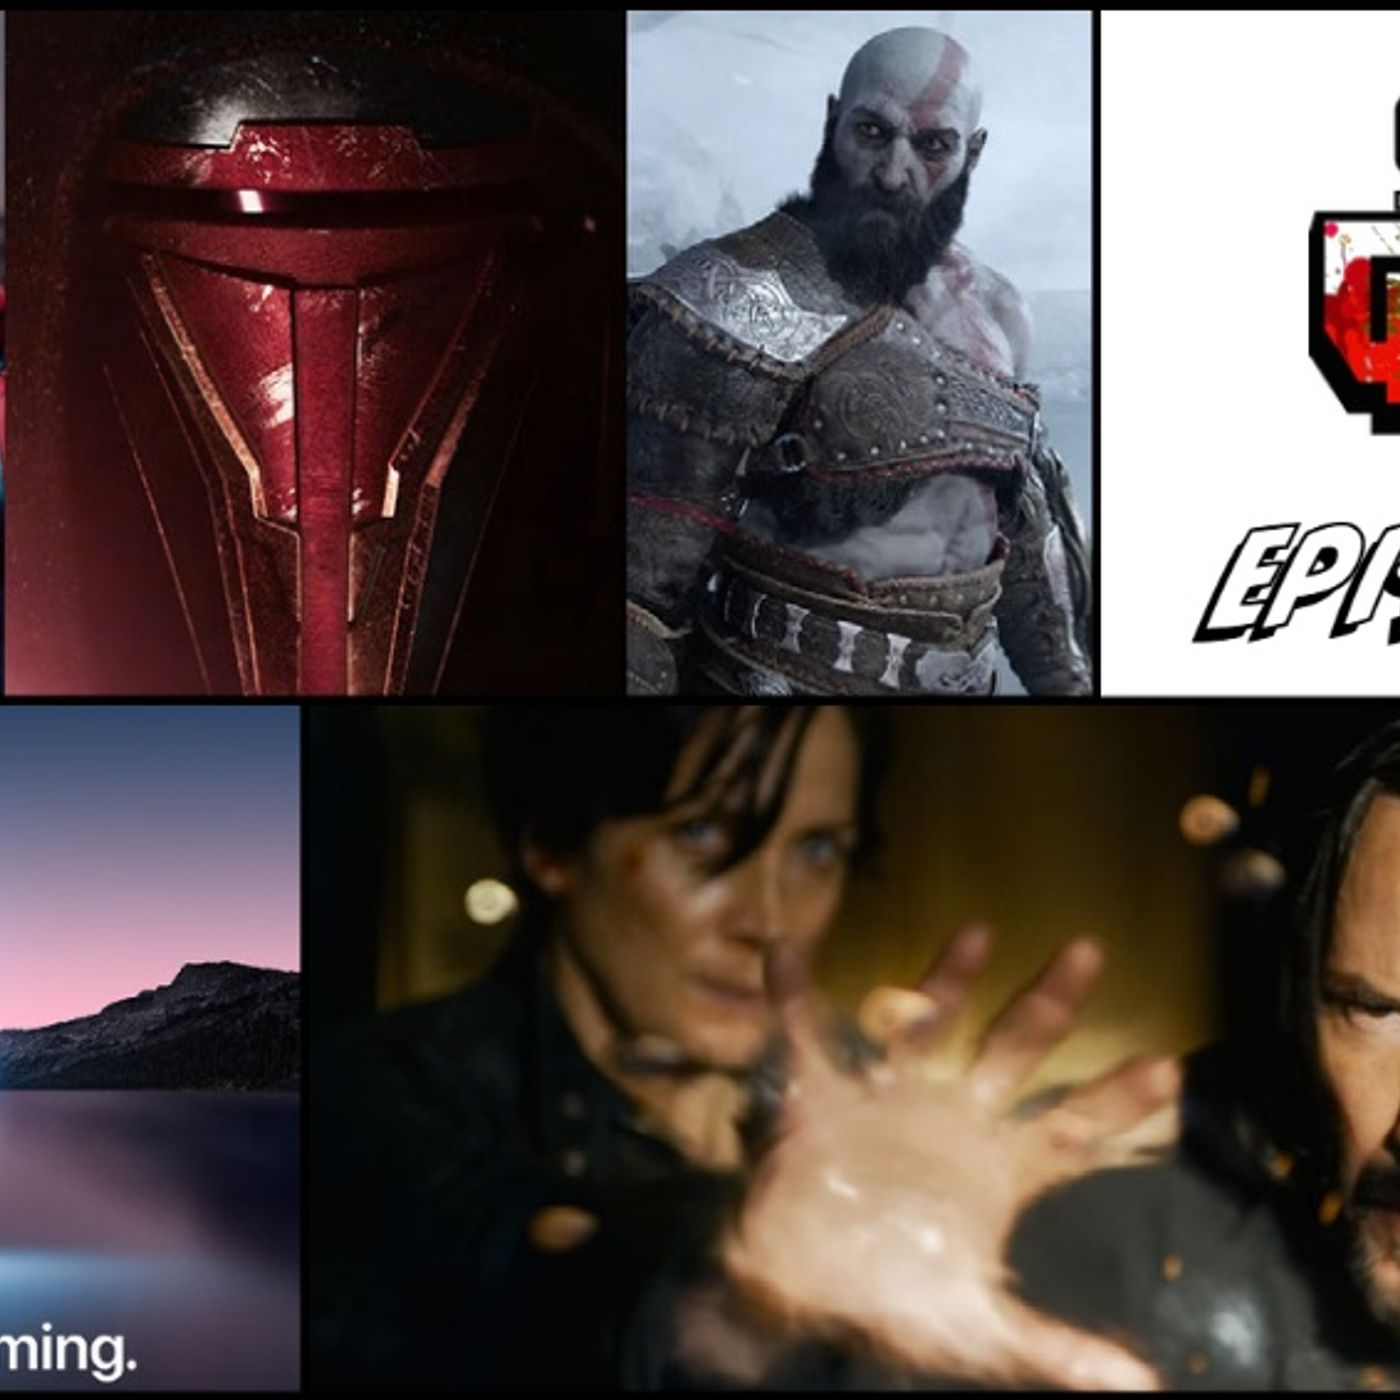 Episode 94 (PlayStation Showcase, The Matrix Resurrections, Apple Event, and more)